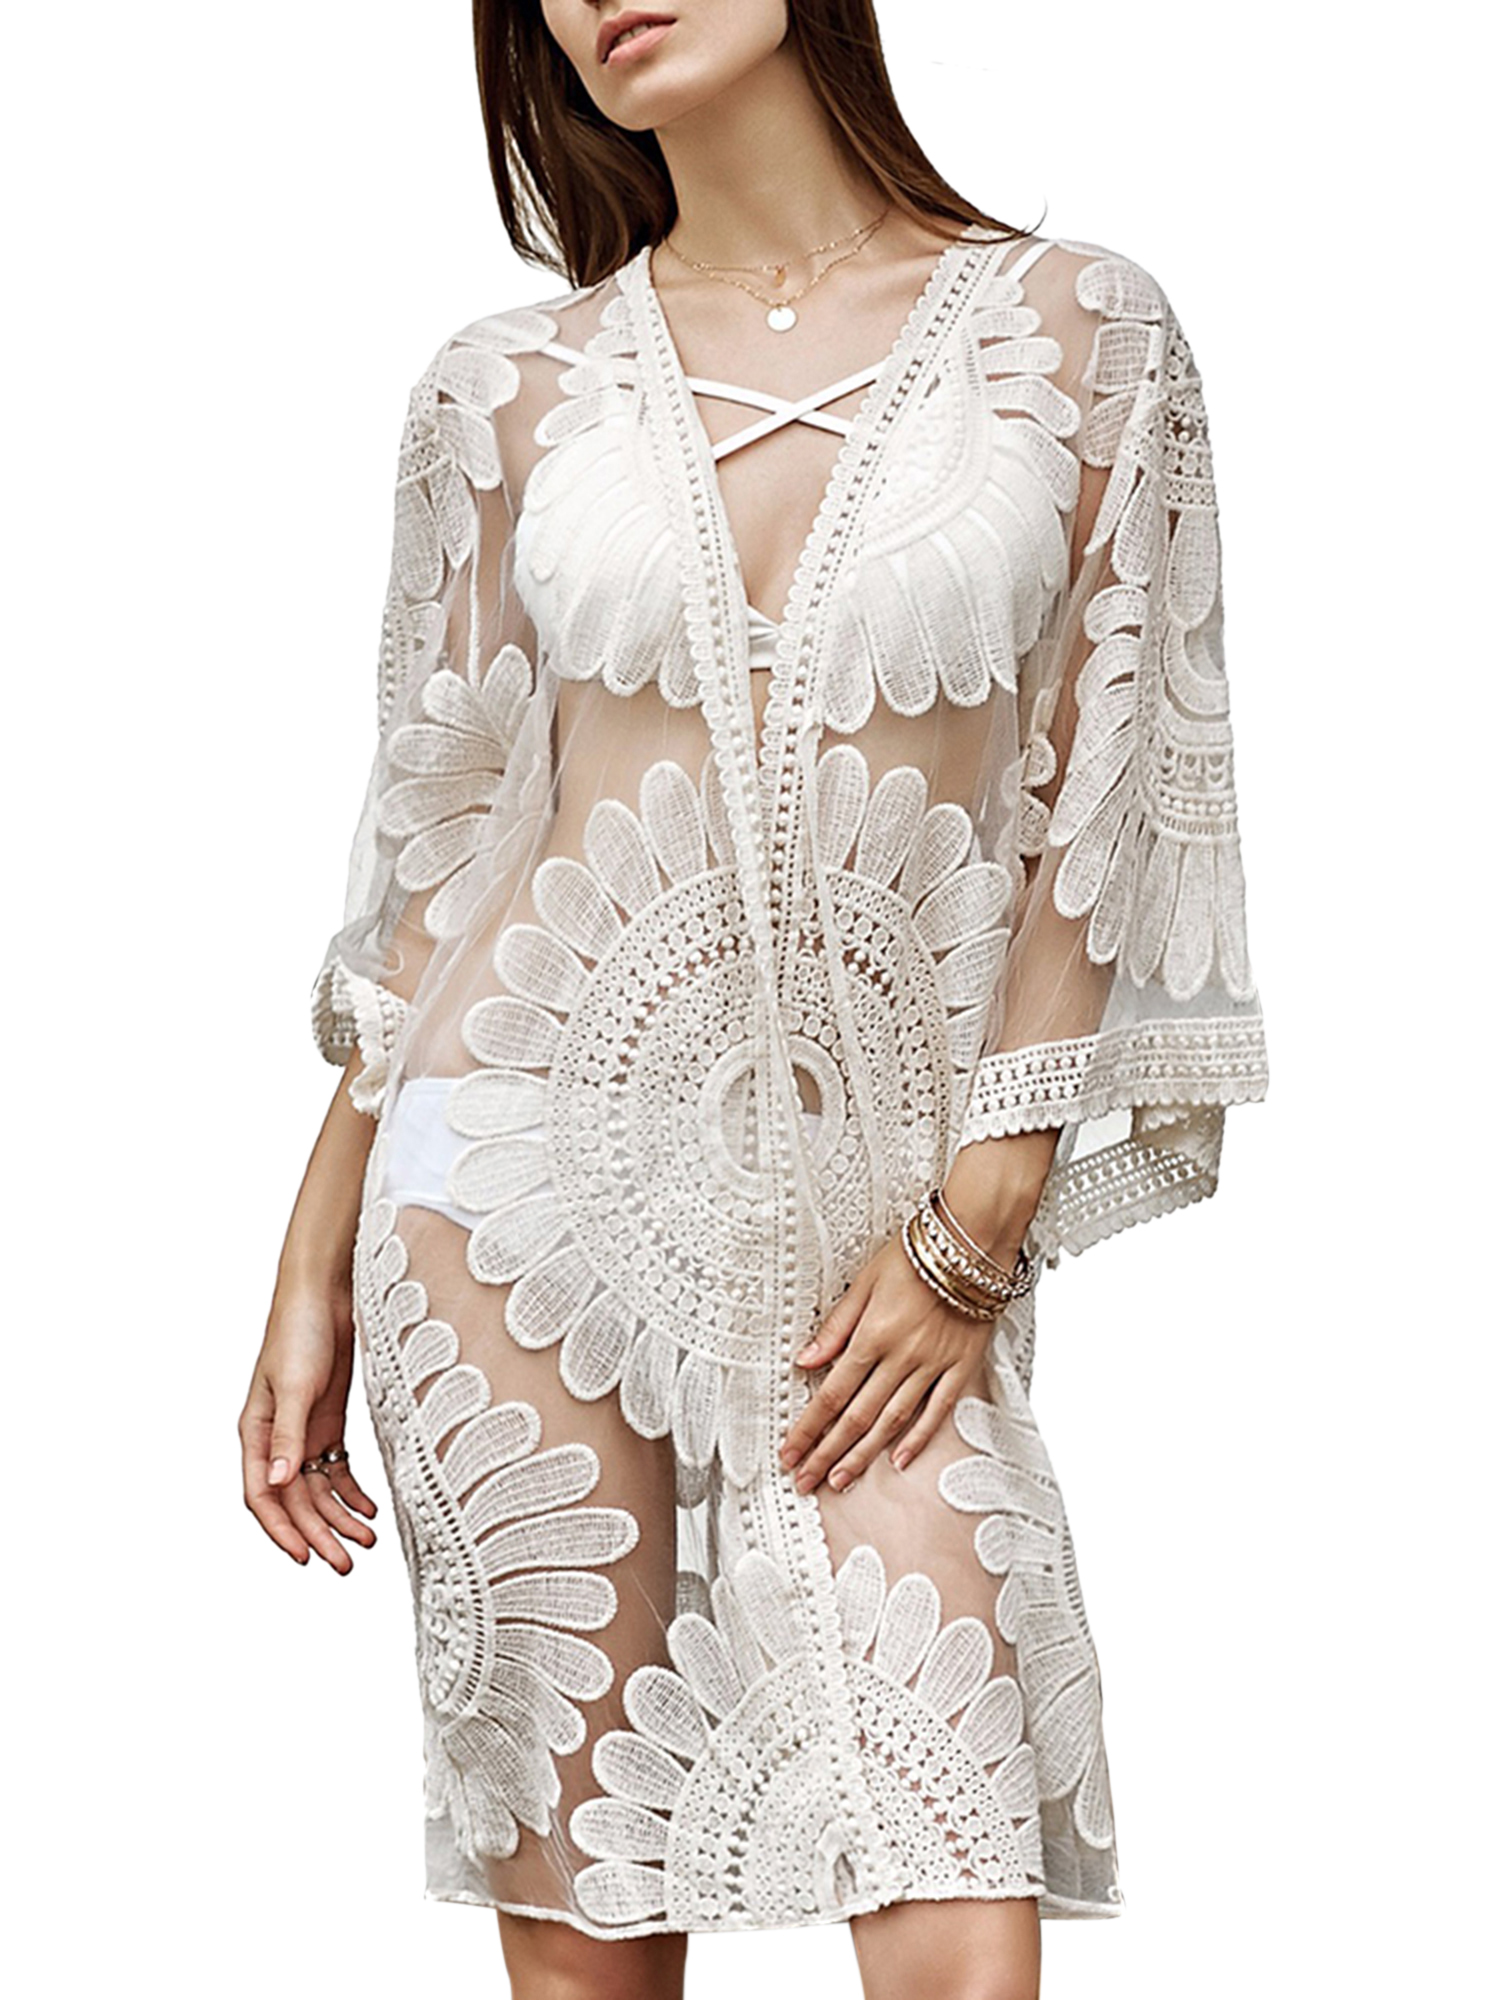 f156341cfd HIMONE - Women Beach Cover Up Swimsuit Floral Lace Open Front Kimono  Cardigan Beachwear Summer Bathing Suit Swimwear Long Tops - Walmart.com